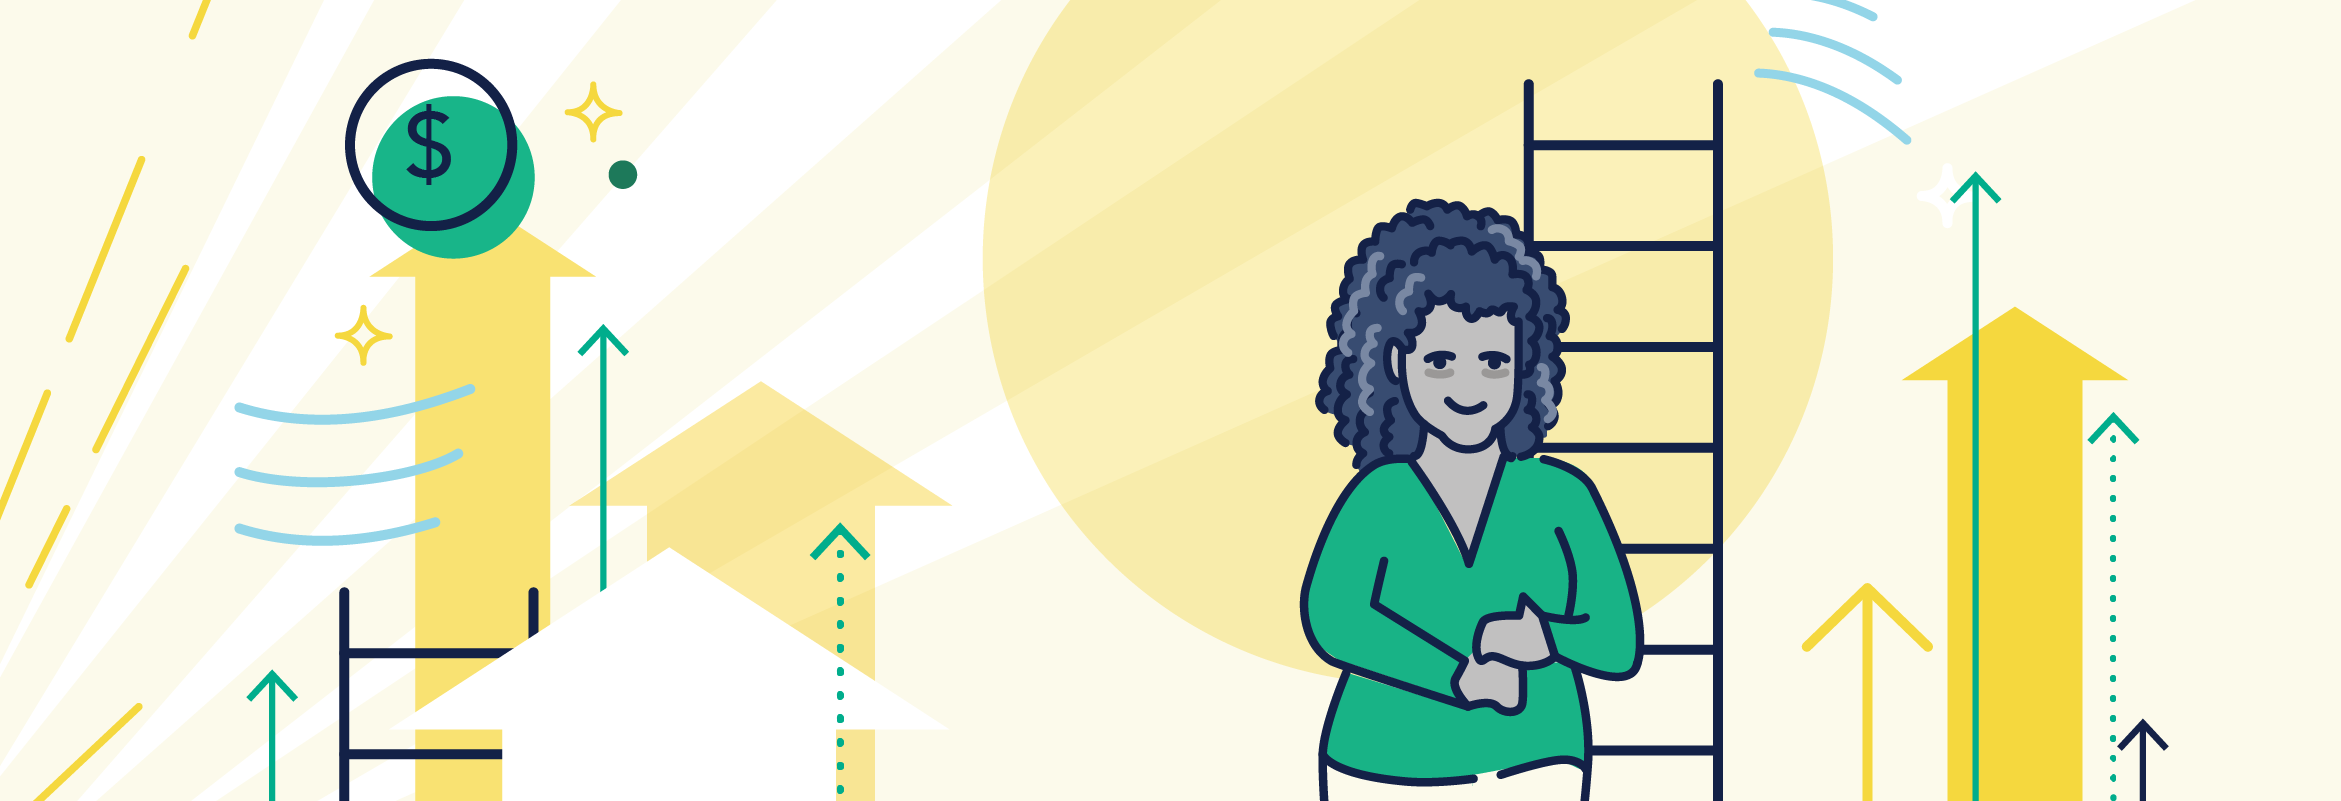 Woman in green shirt stands next to a ladder and is surrounded by arrows pointed up. A USD currency sign is to her left. The image is intended to convey the power of upskilling to allow for greater financial freedom and upward employment mobility.